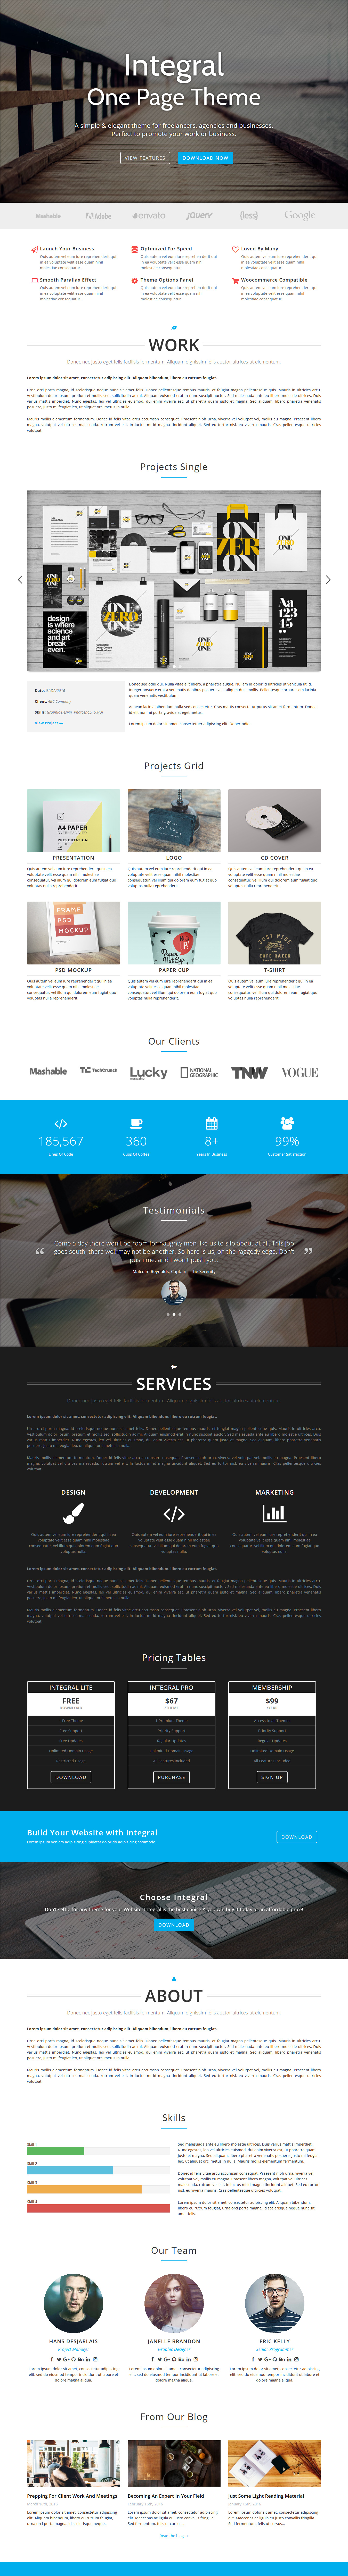 integral best free architecture wordpress theme - 10+ Best Free Architecture WordPress Themes